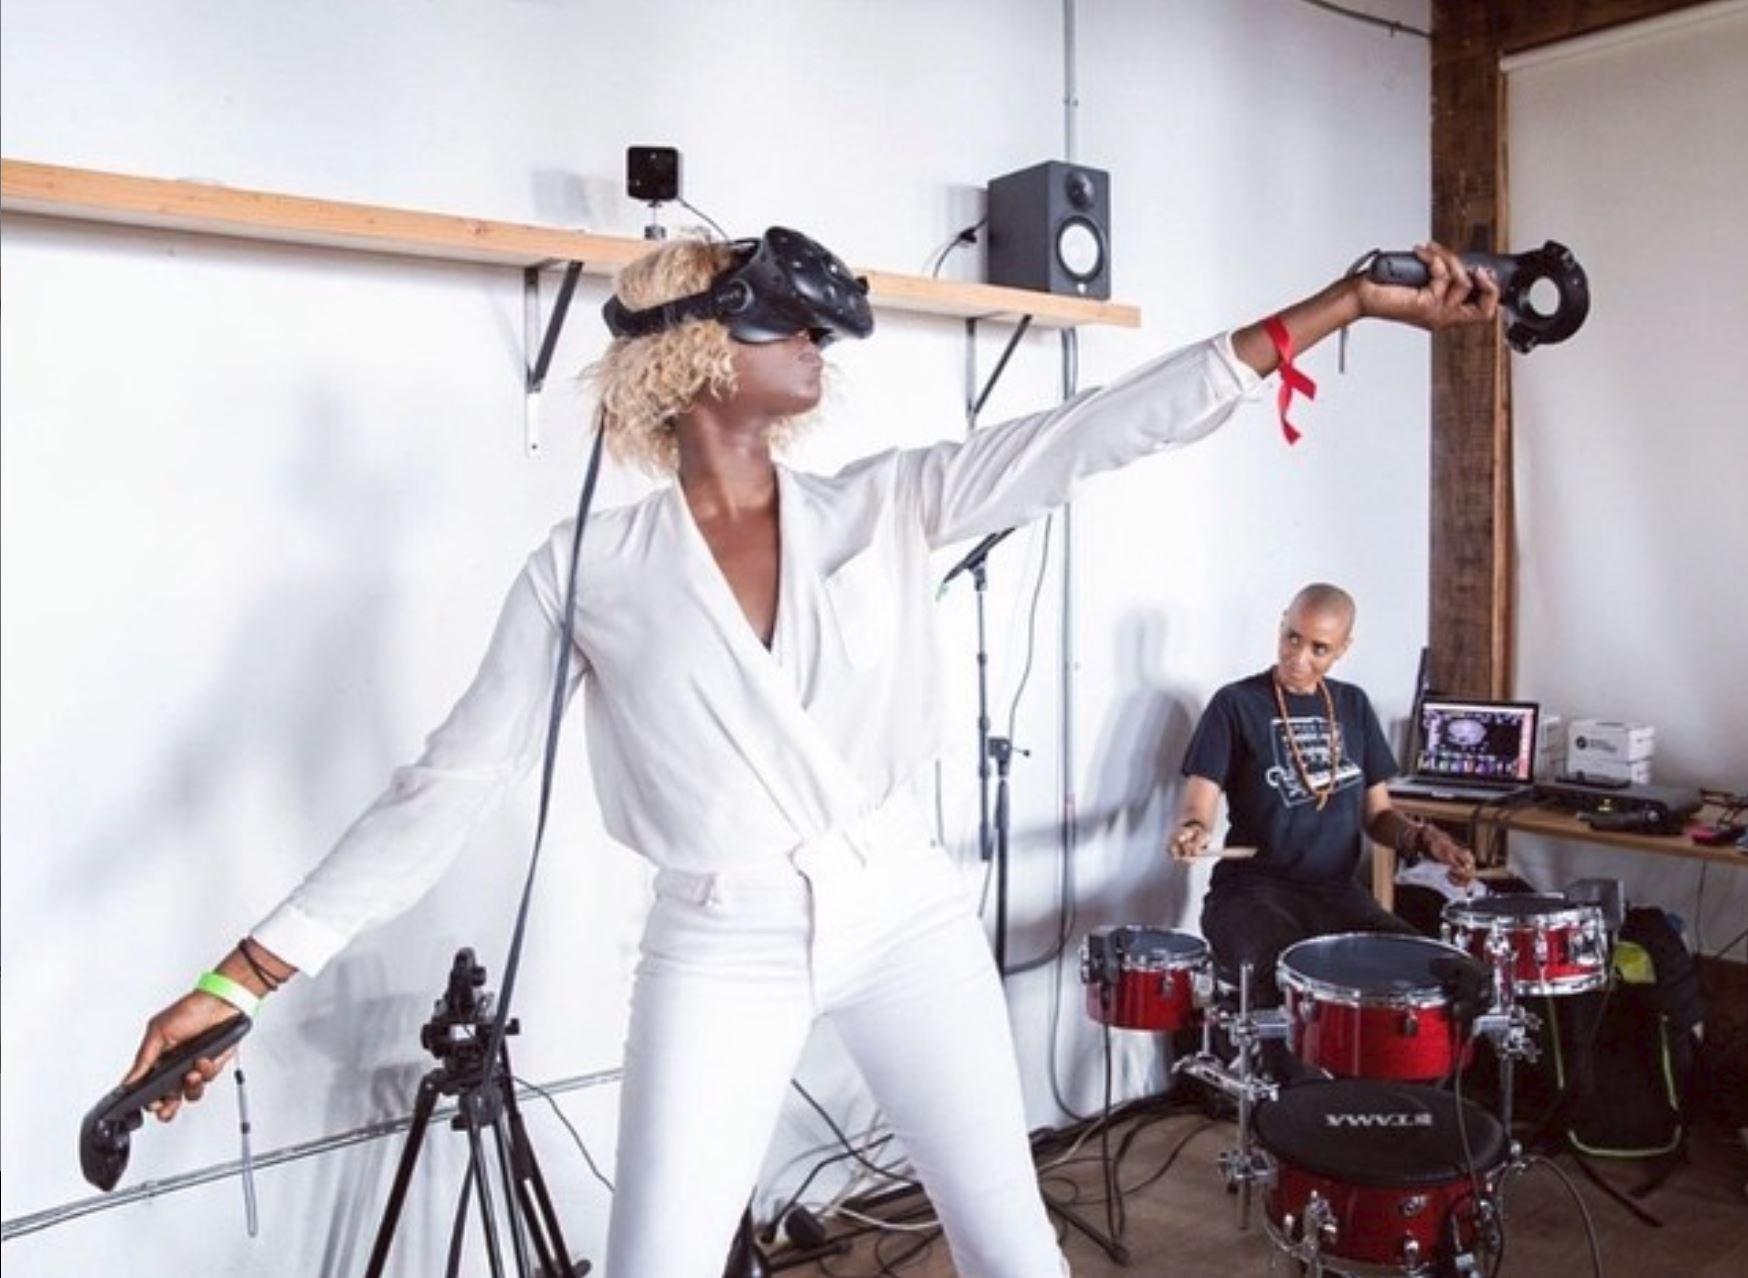 Amina performing the role of VR Conductor for open studio lab at Pioneer Works (technologist in residence Beth Coleman). Photo by Walter Wlodarczyk